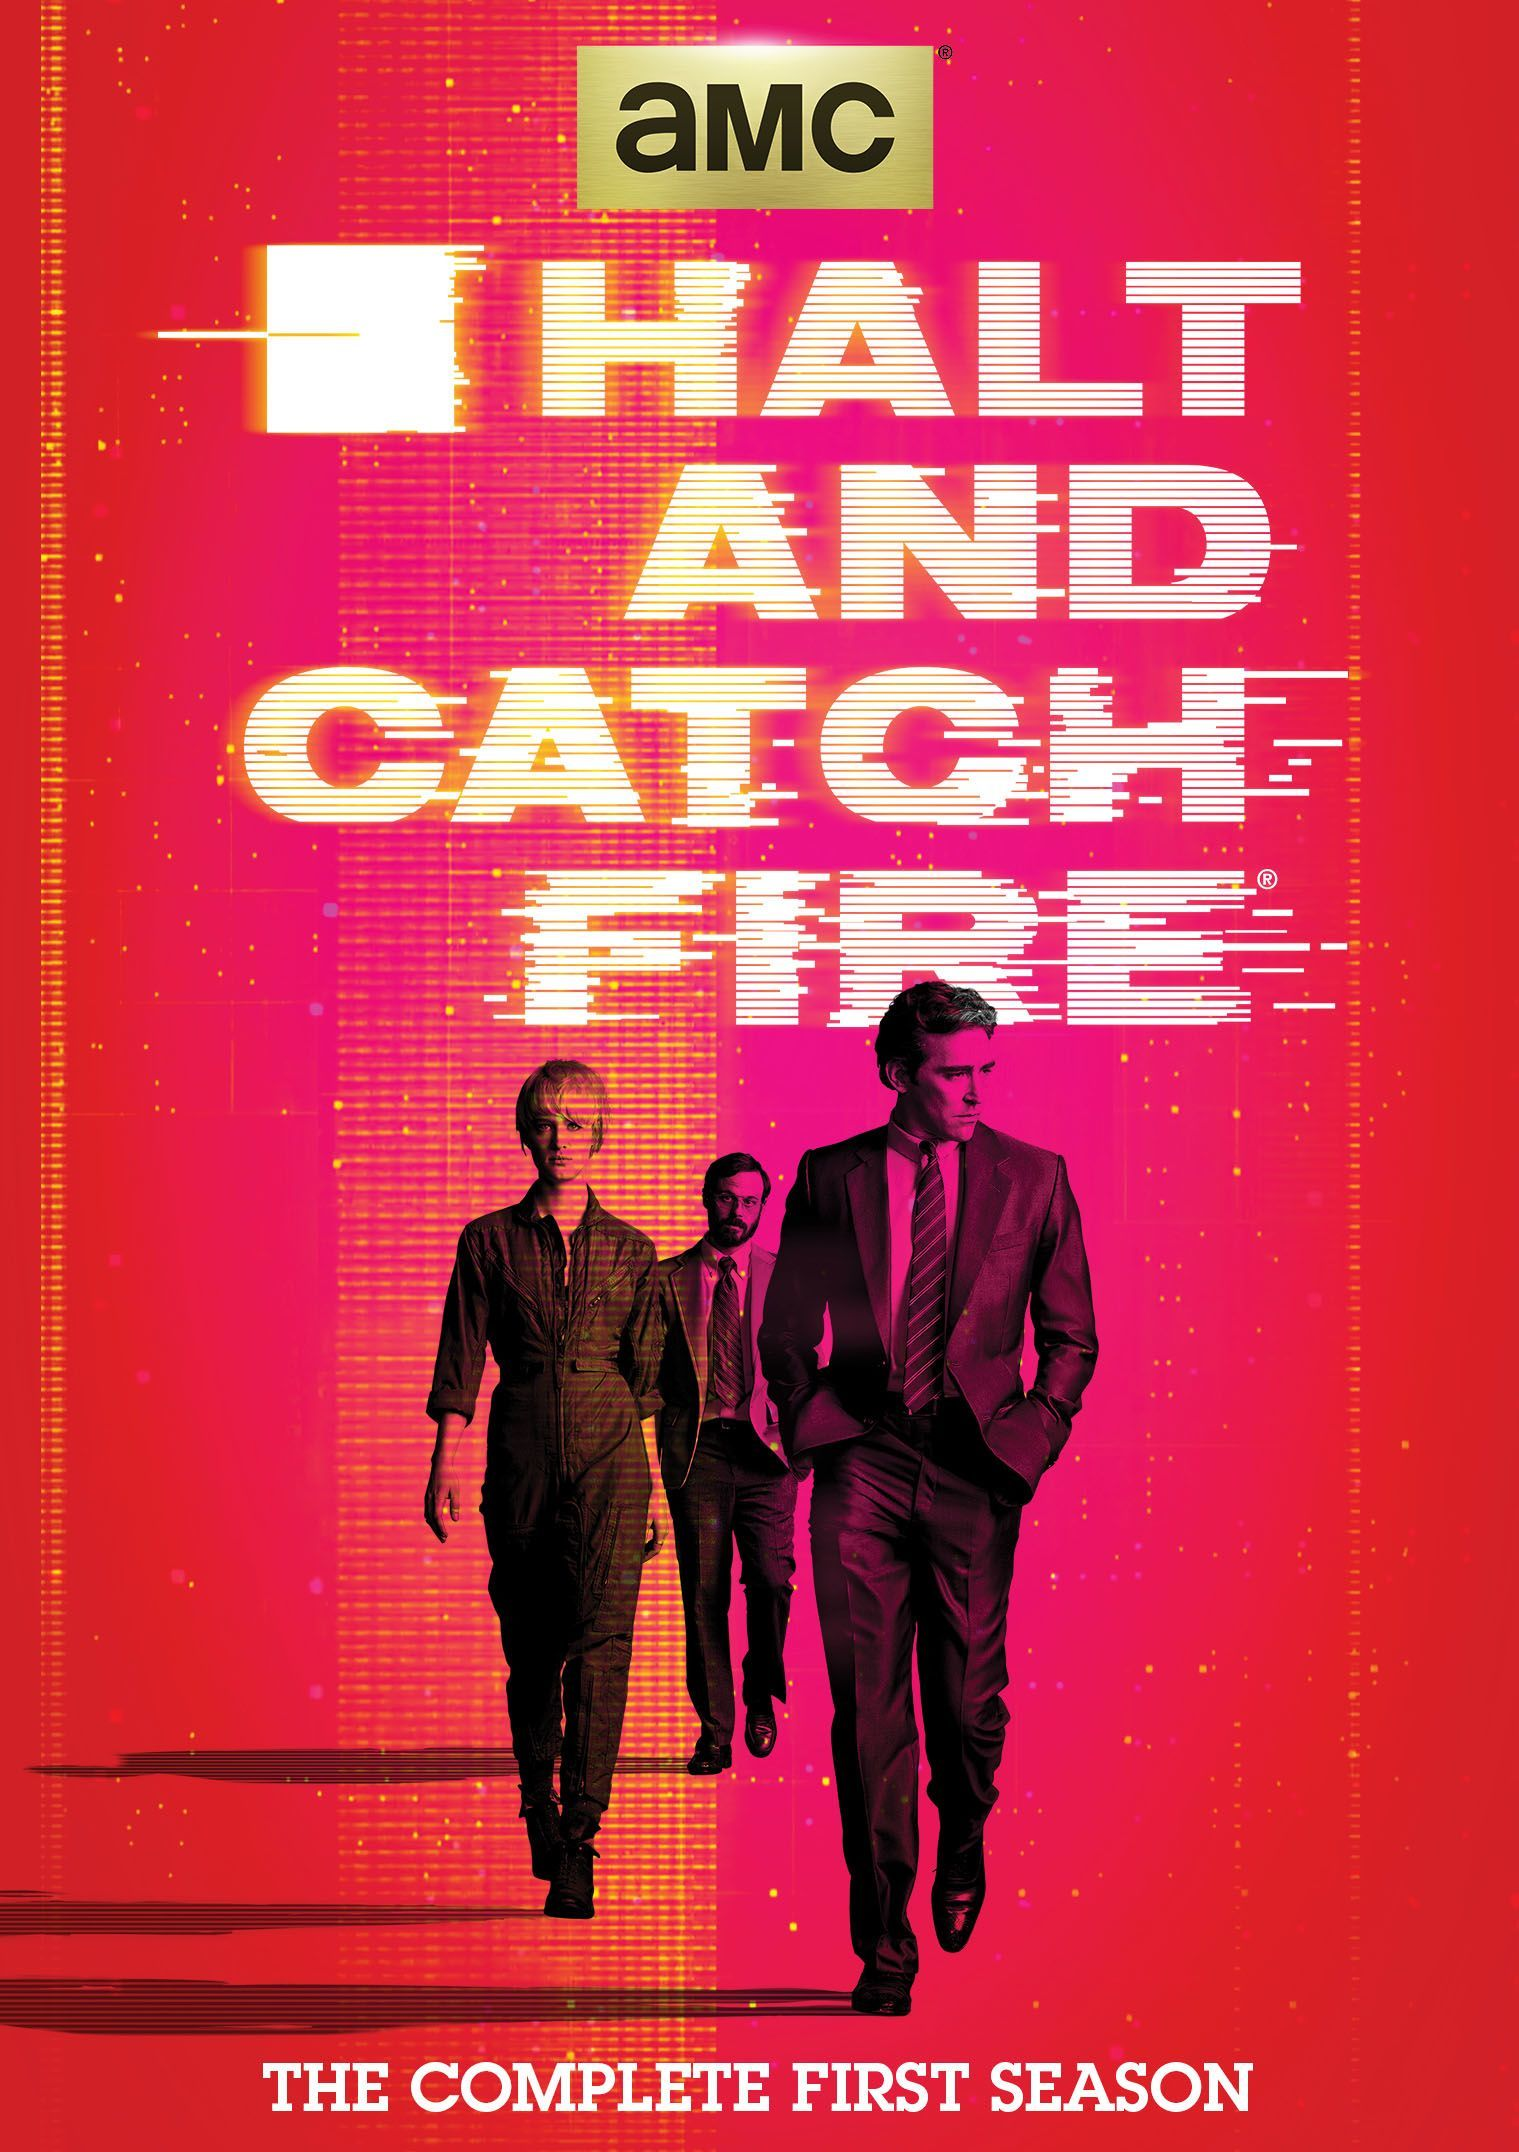 Halt & Catch Fire dvd blu-ray box cover 2015